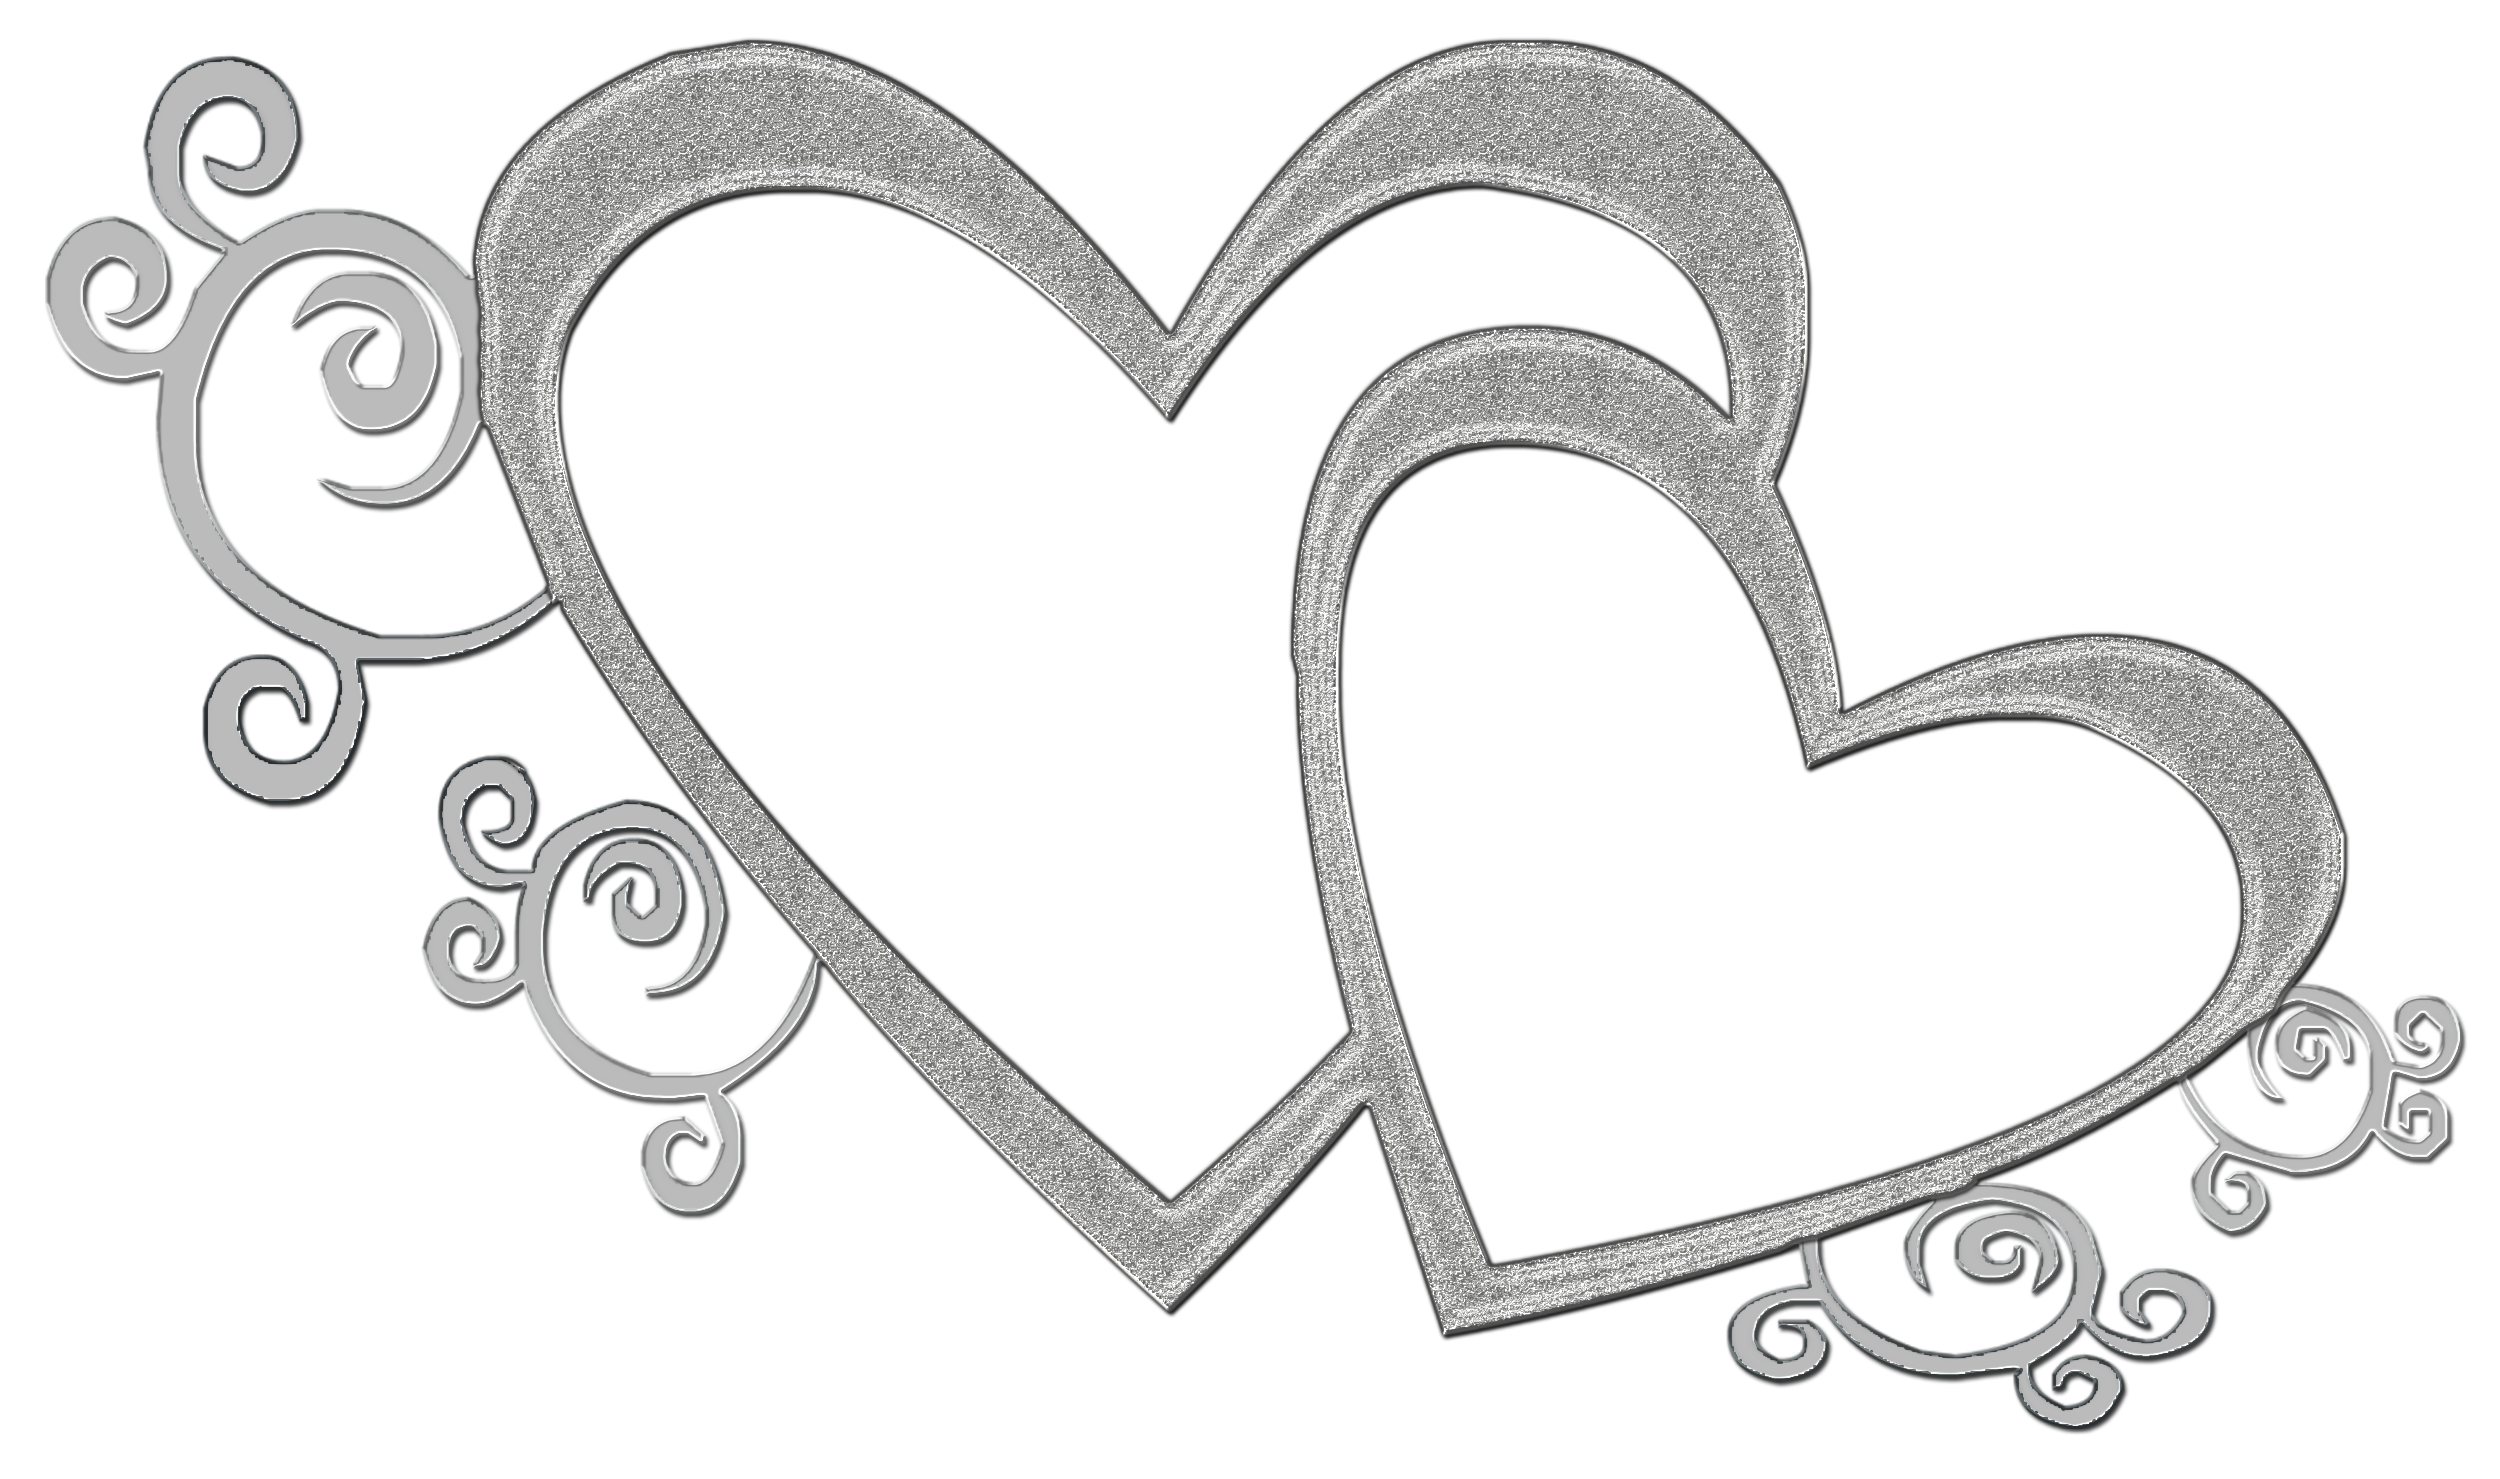 Heart black and white double heart clipart black and white